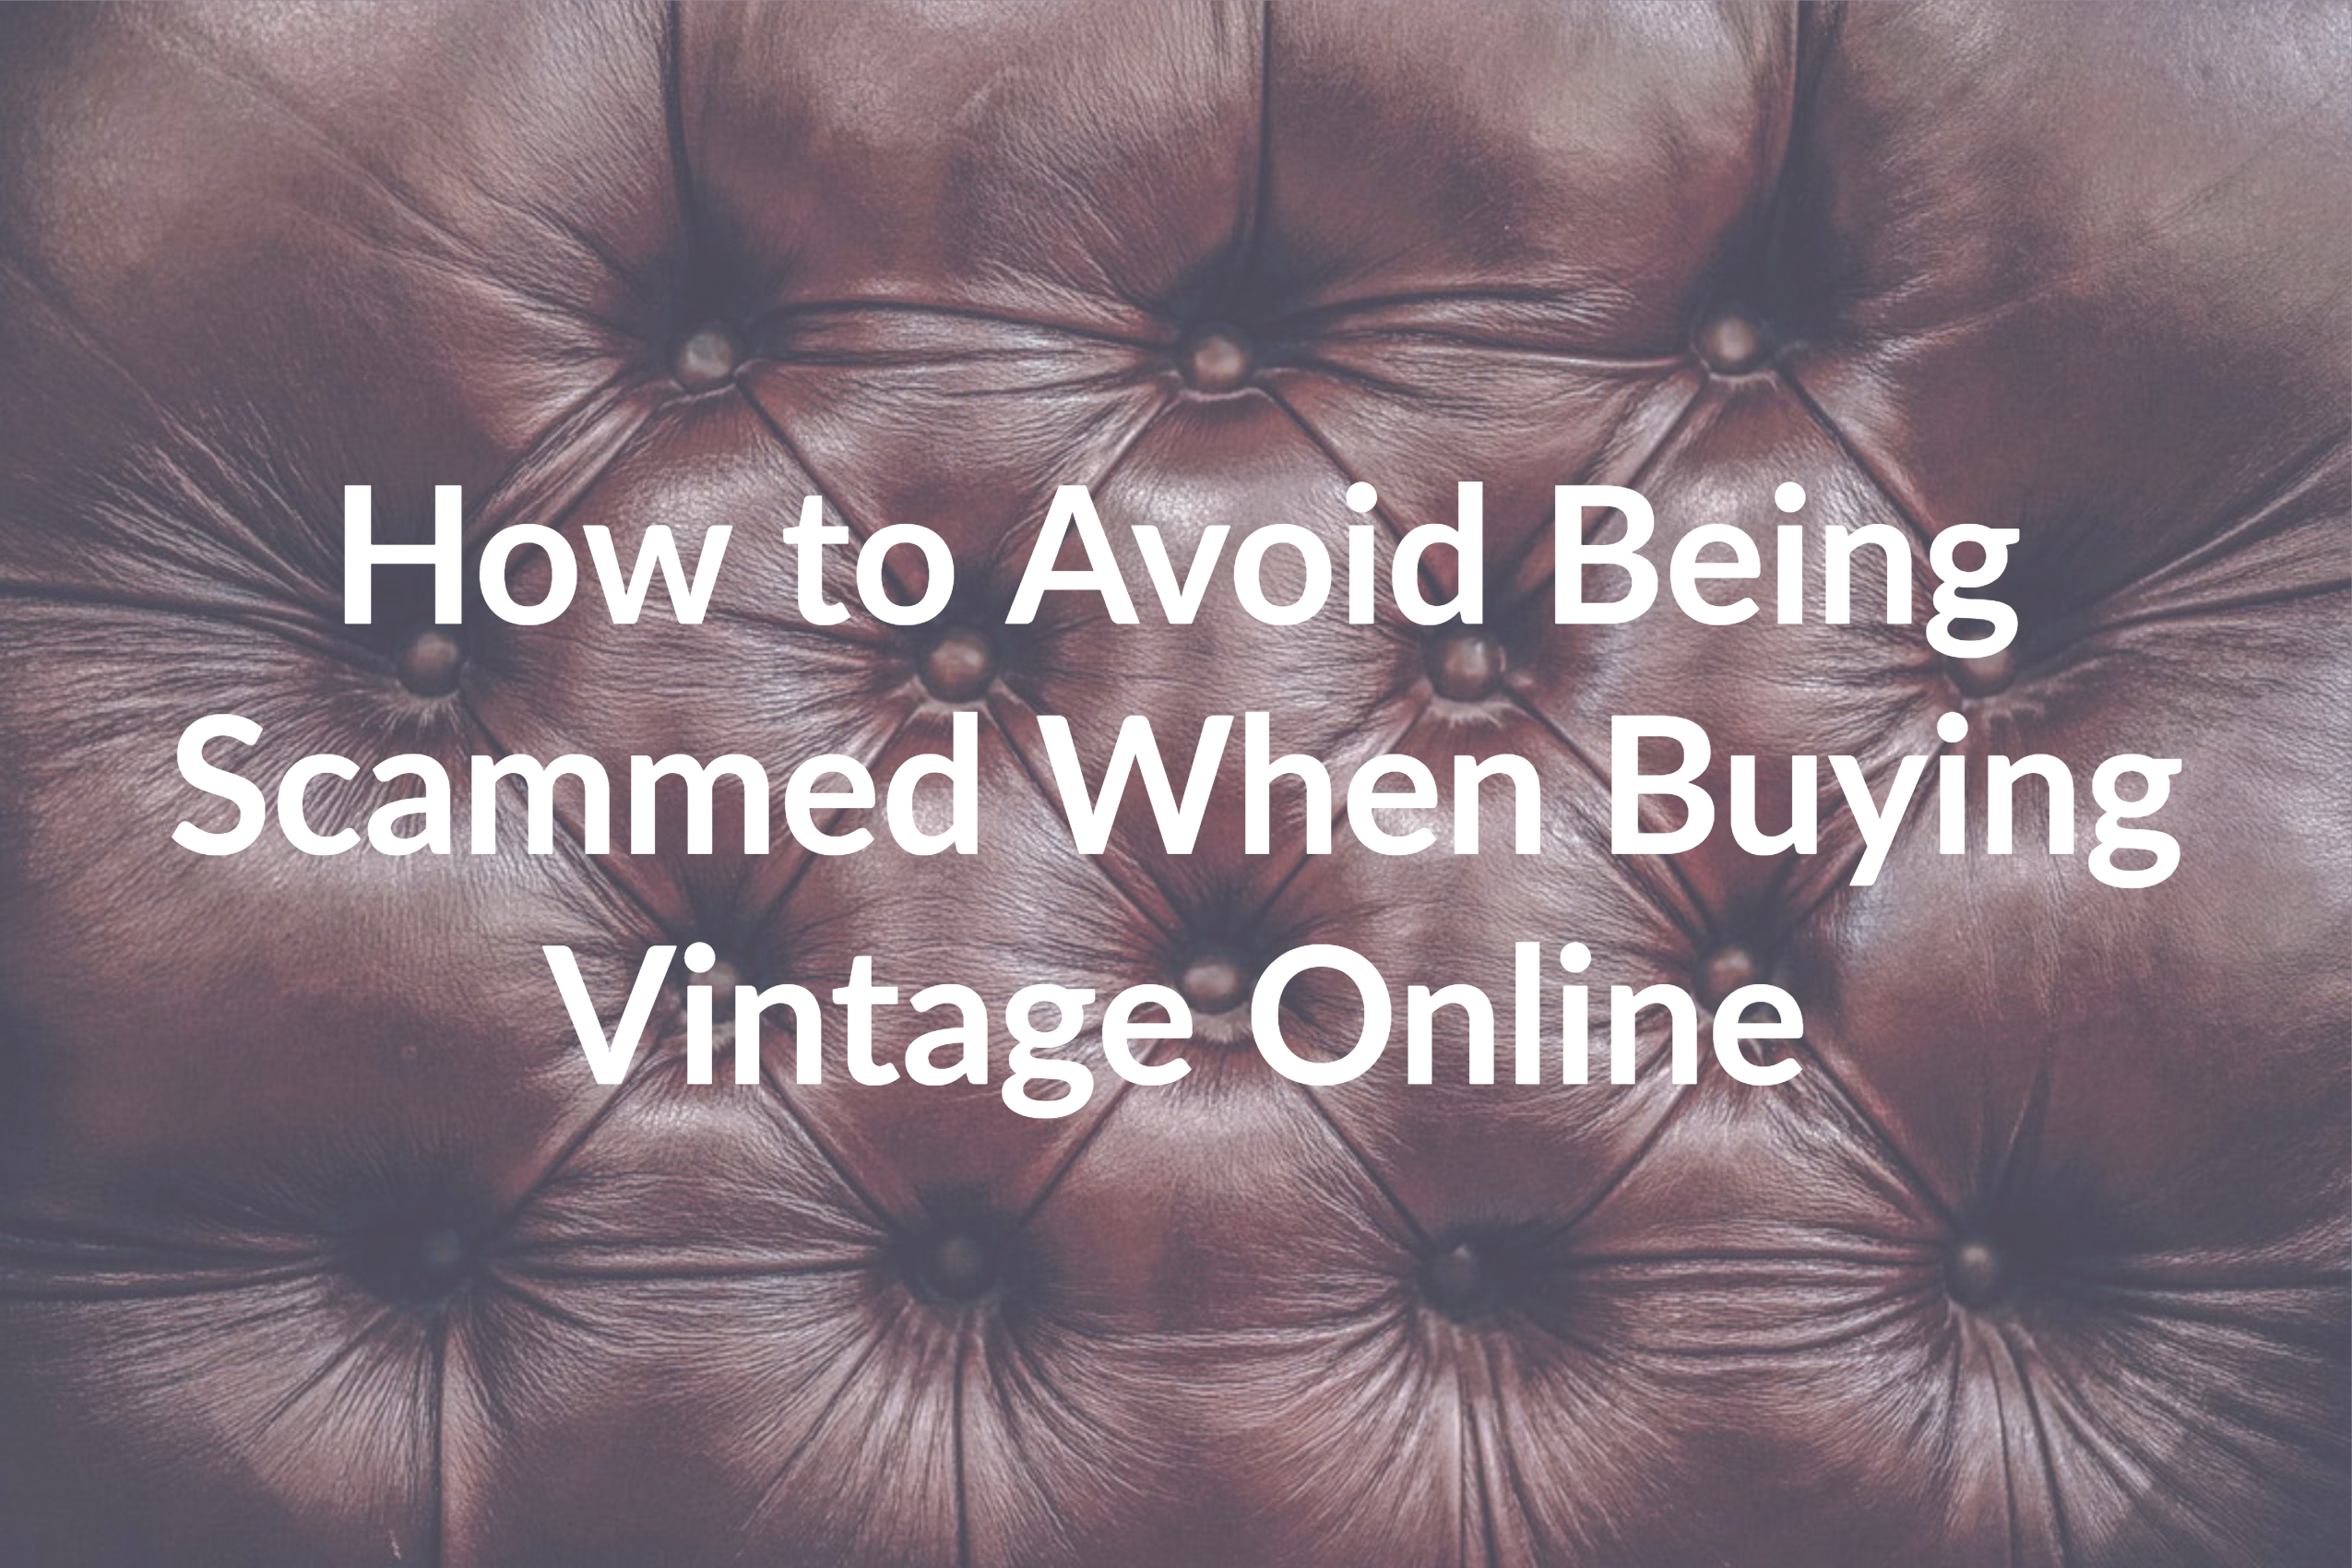 How to Avoid Being Scammed When Buying Vintage Online